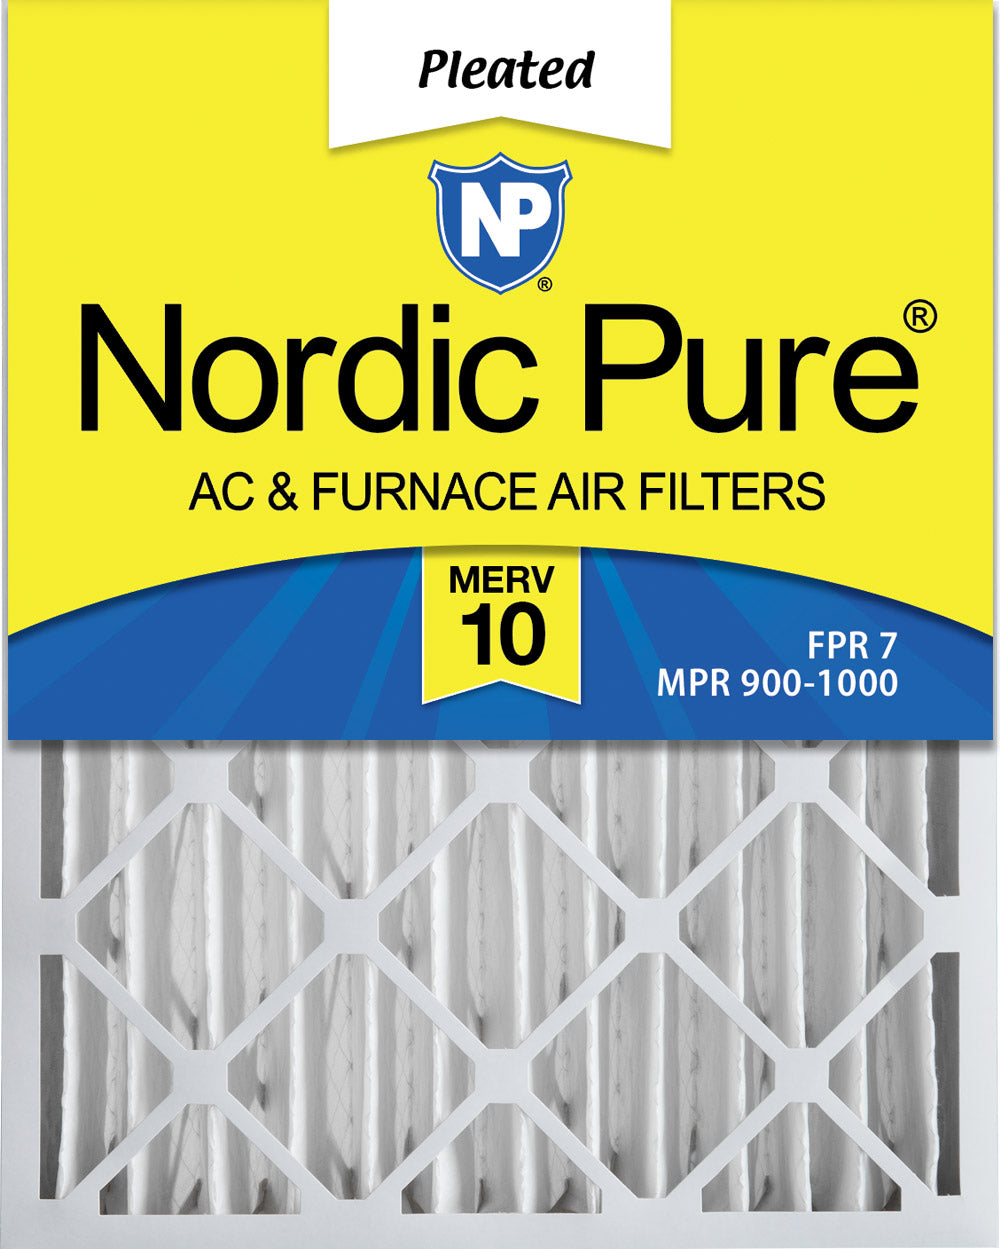 20x25x4 (3 5/8) Pleated MERV 10 Air Filters 6 Pack